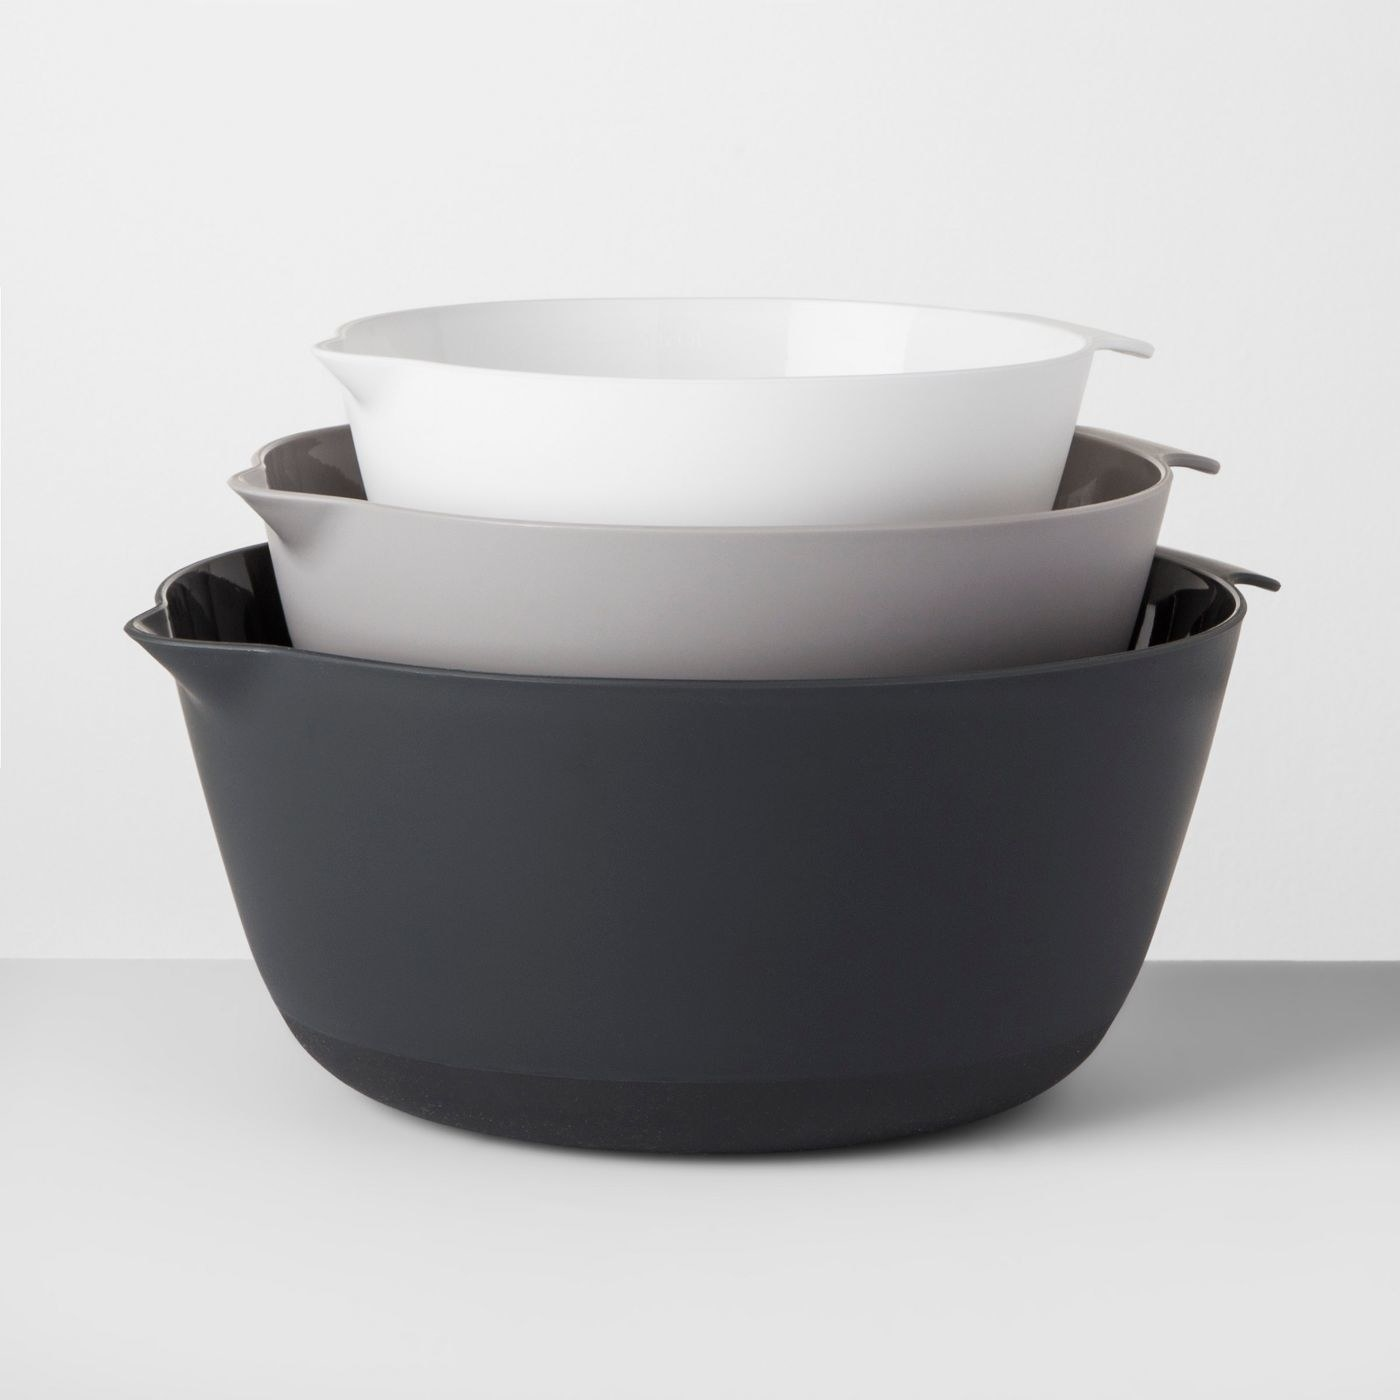 a white bowl, a light gray bowl, and a dark gray bowl stacked inside each other